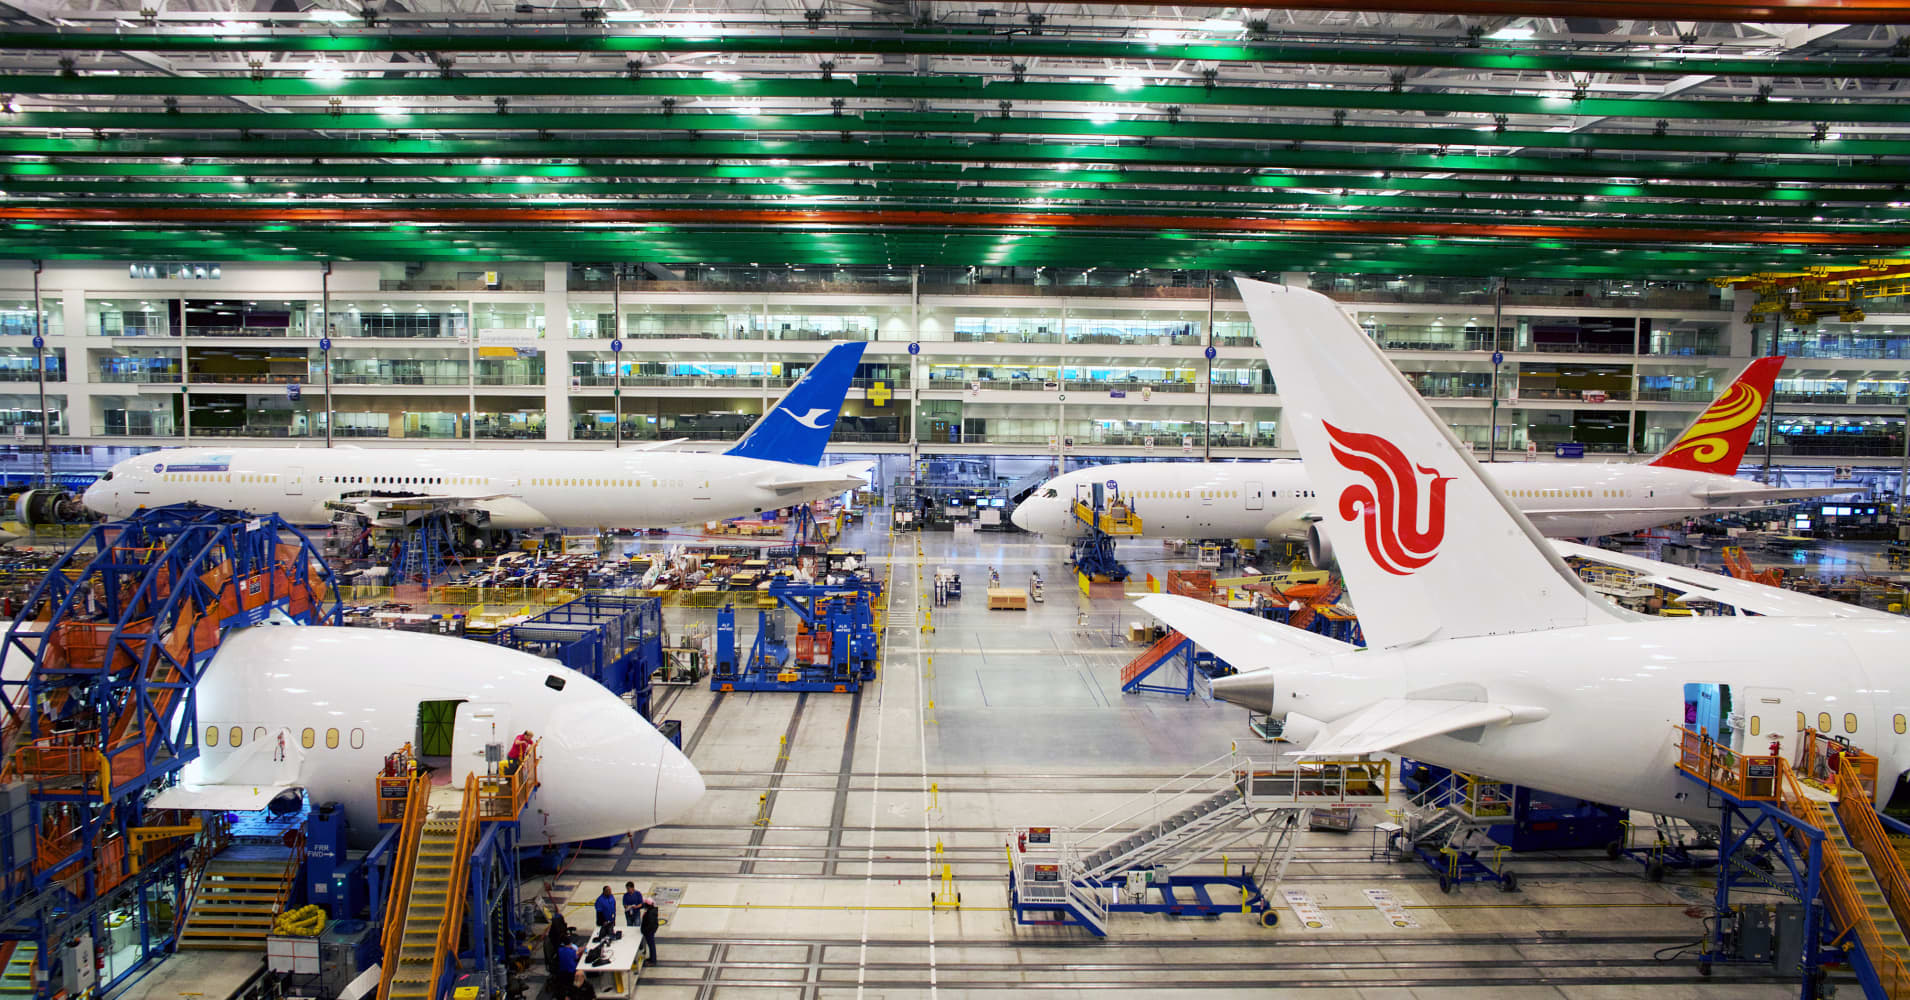 Boeing's Dreamliner jet now facing claims of manufacturing issues: NYT report